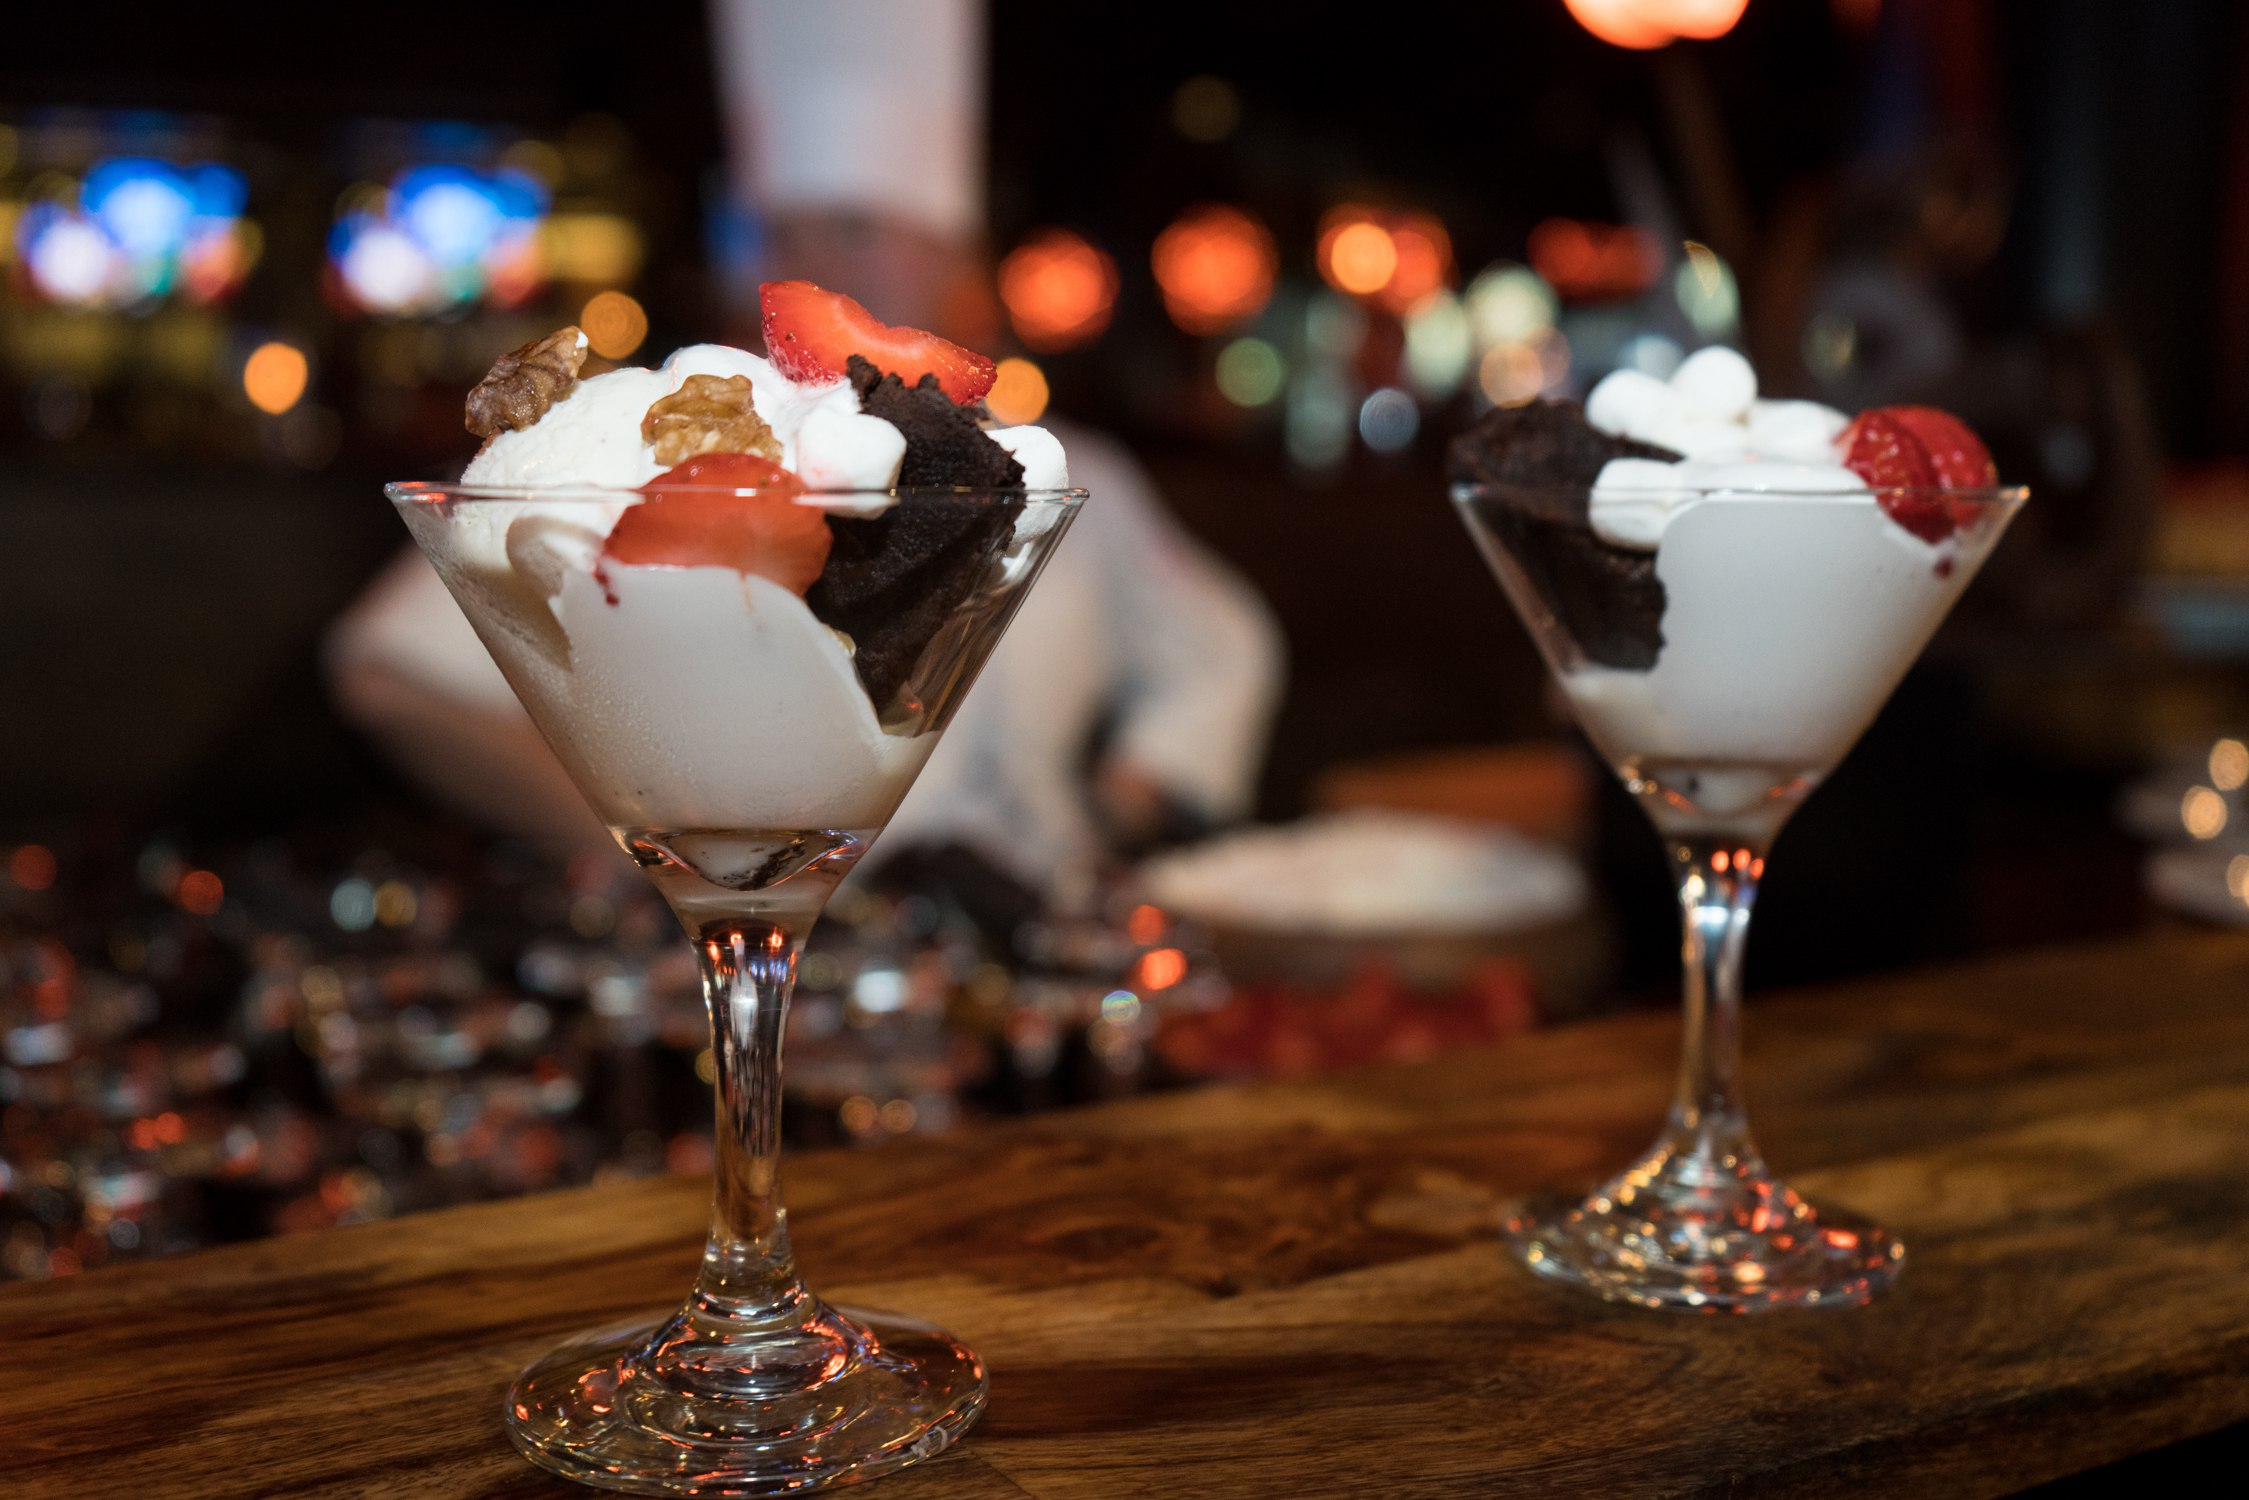 Top 5 delectable desserts at NBC Sports Grill & Brew